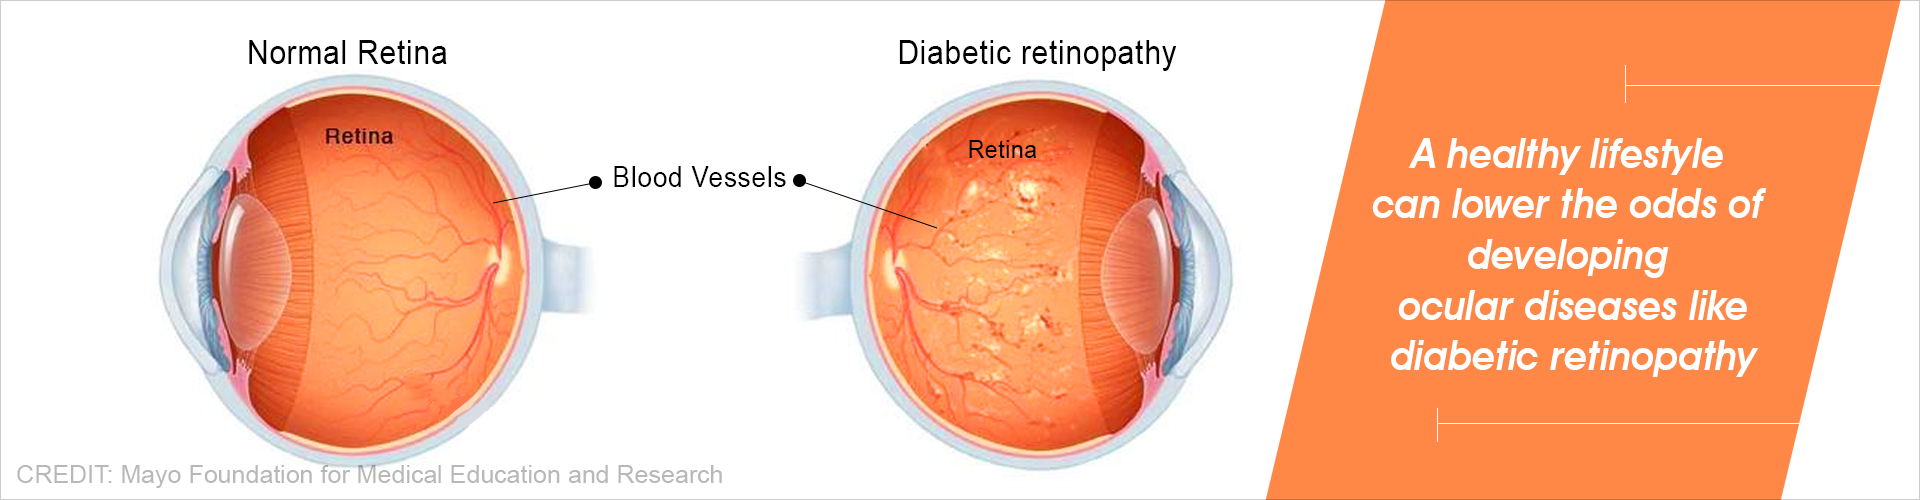 Ideal Lifestyle for Cardiovascular Health also Benefits Eye Health